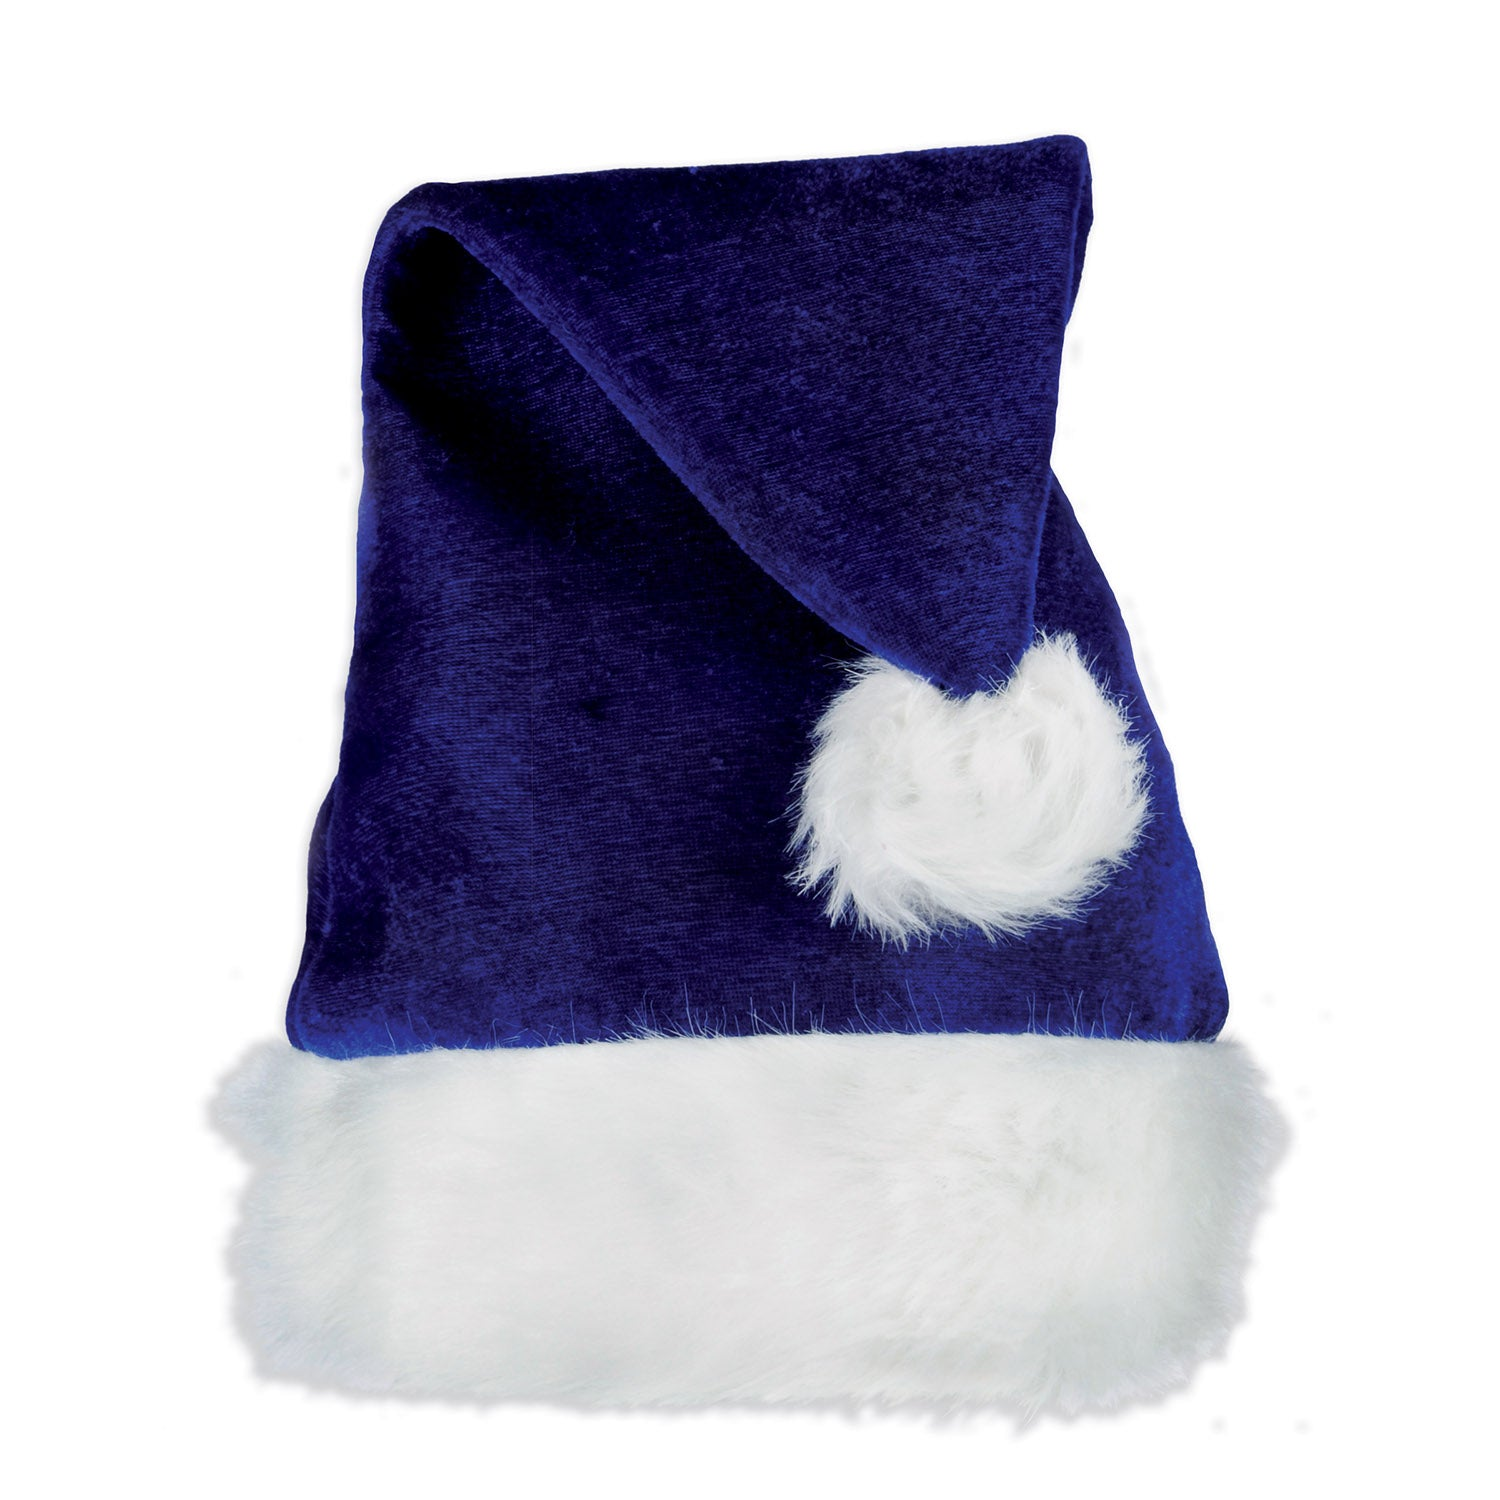 Santa Hat, blue by Beistle - Winter and Christmas Theme Decorations